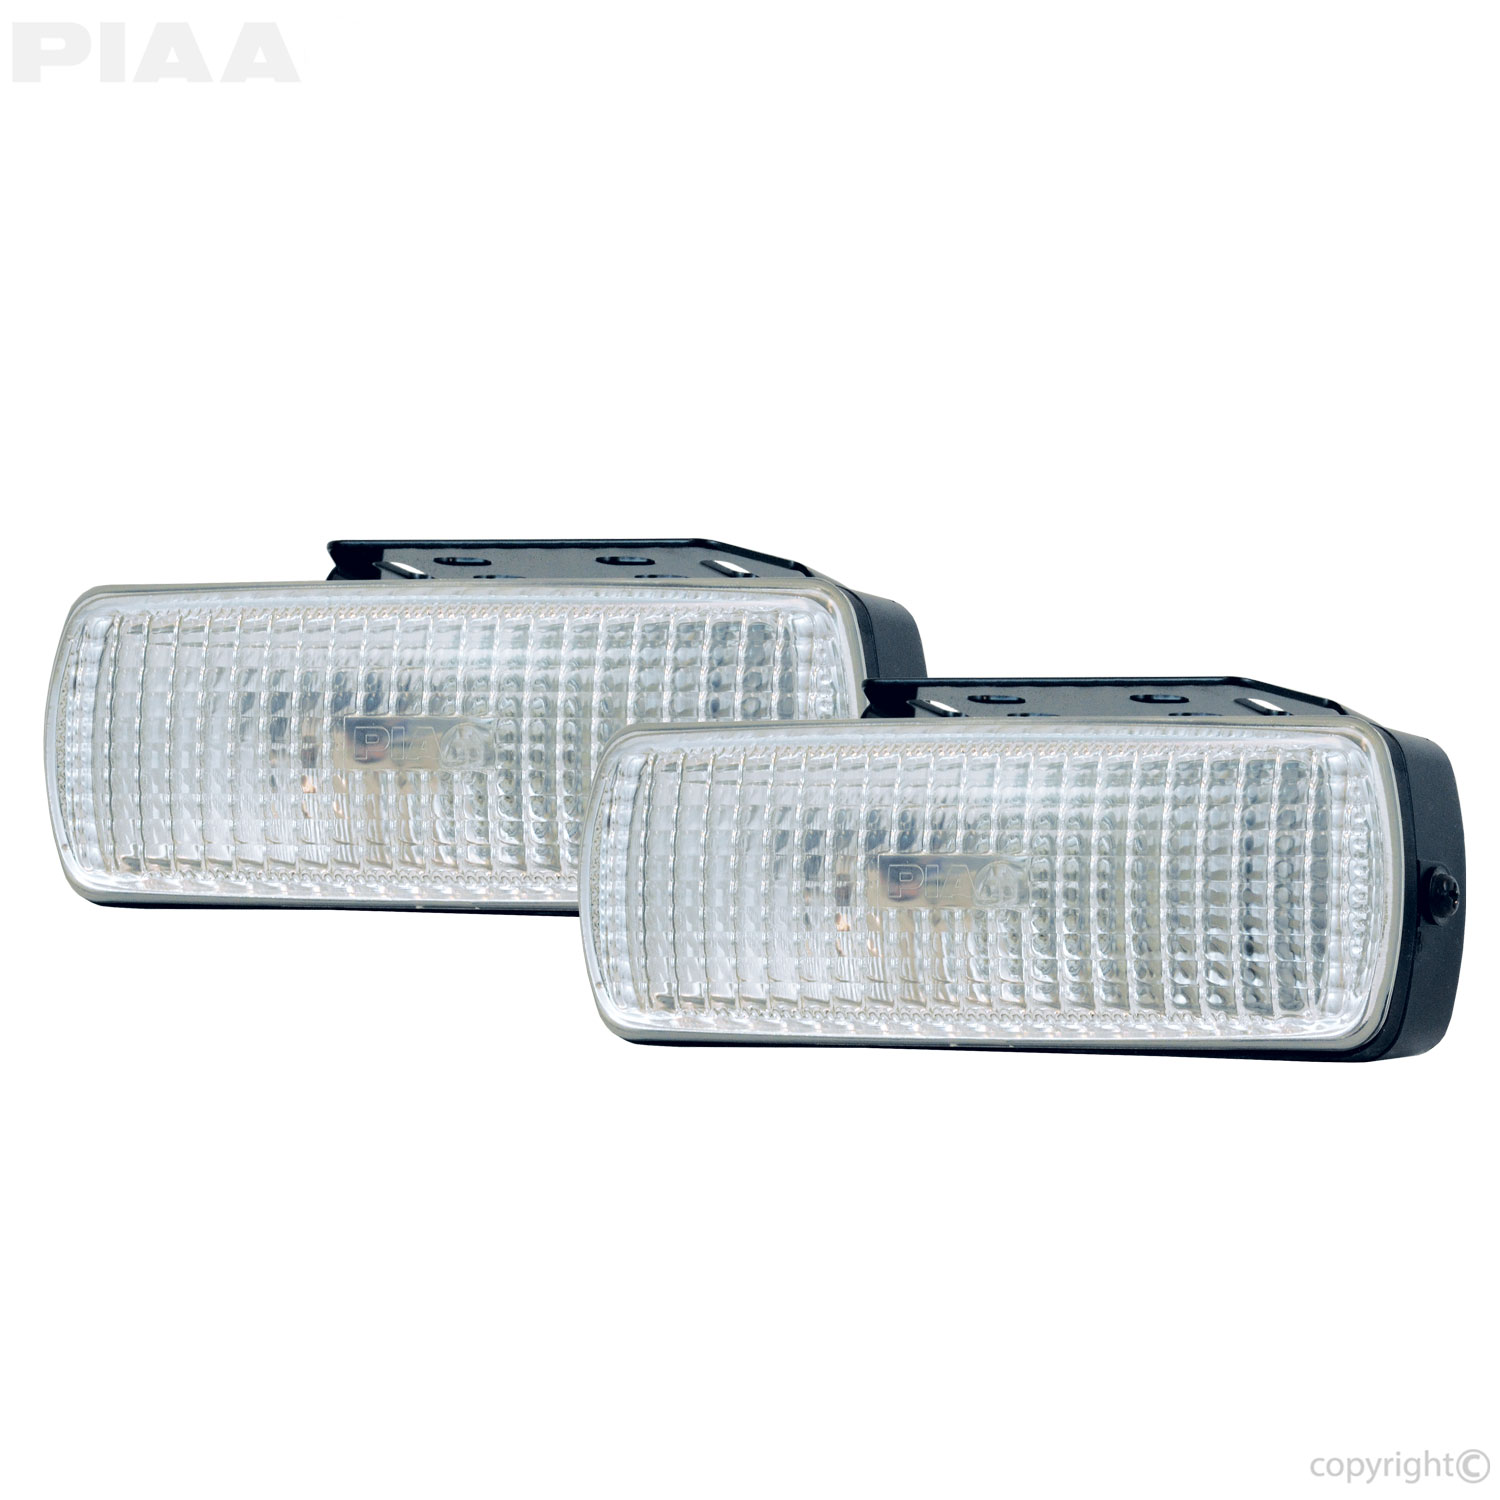 Piaa Switch 30034 Wiring Diagram Page 4 And Lp530 Led Harness 1500 Back Up Clear Halogen Lamp Kit 1540